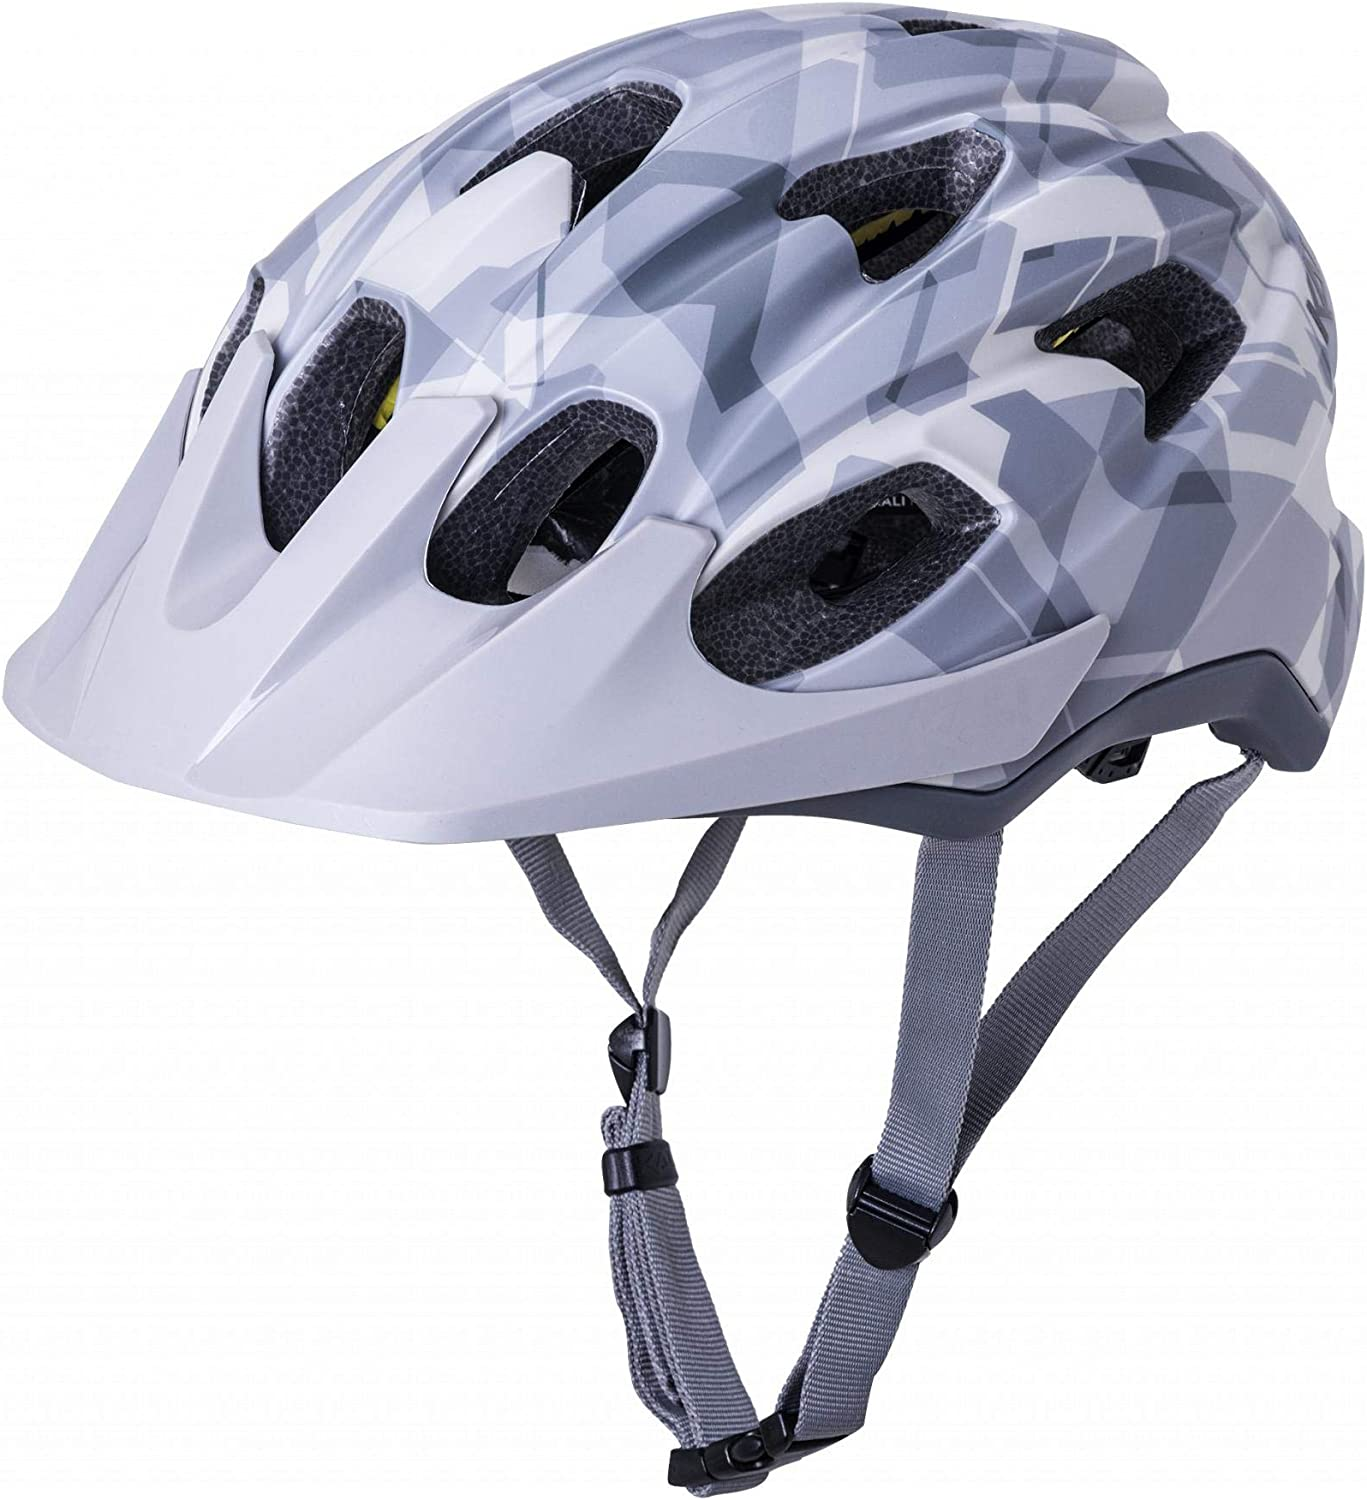 Kali Protectives Pace Solid Adult Off-Road BMX Max 69% OFF Cycling San Jose Mall Helmet